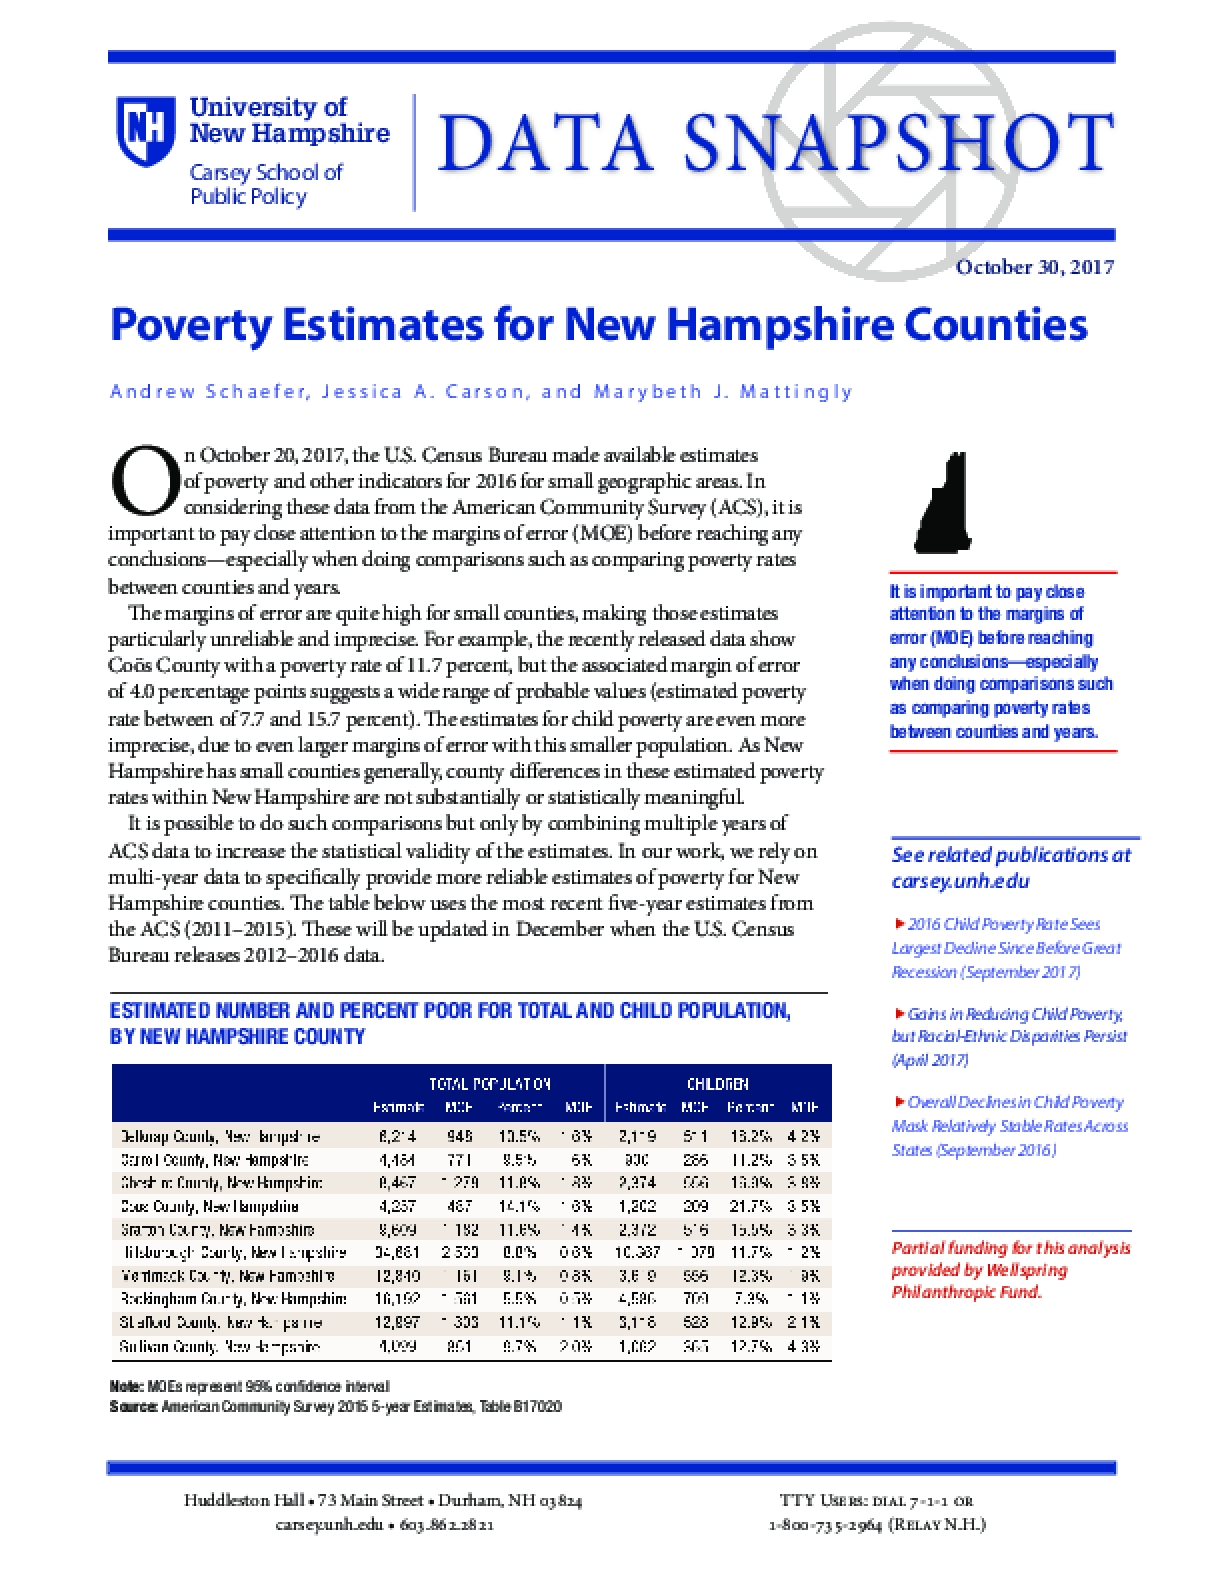 Data Snapshot: Poverty Estimates for New Hampshire Counties